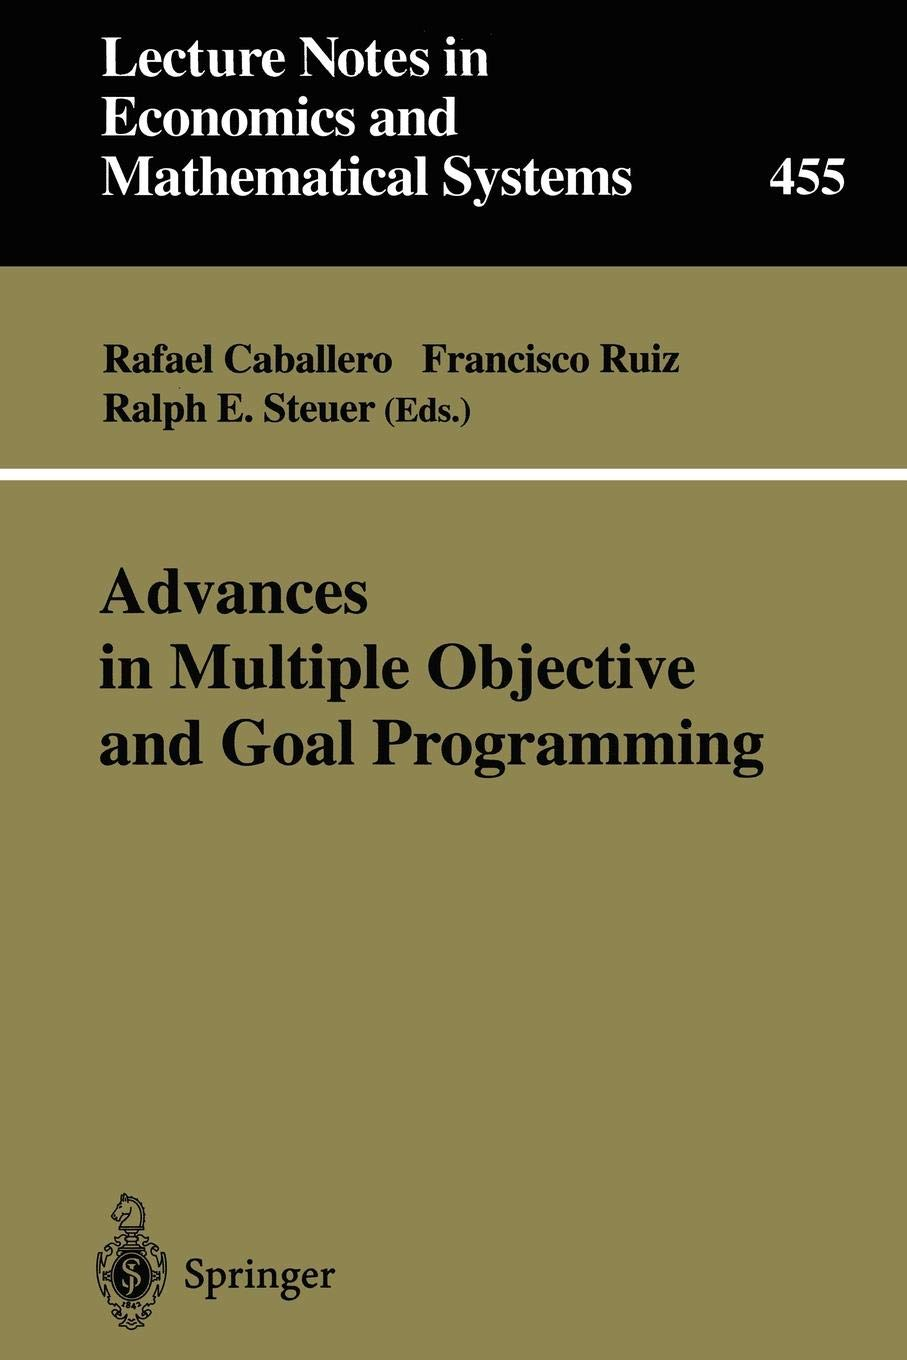 Advances in Multiple Objective and Goal Programming: Proceedings of the Second International Conference on Multi-Objective Programming and Goal ... Notes in Economics and Mathematical Systems)